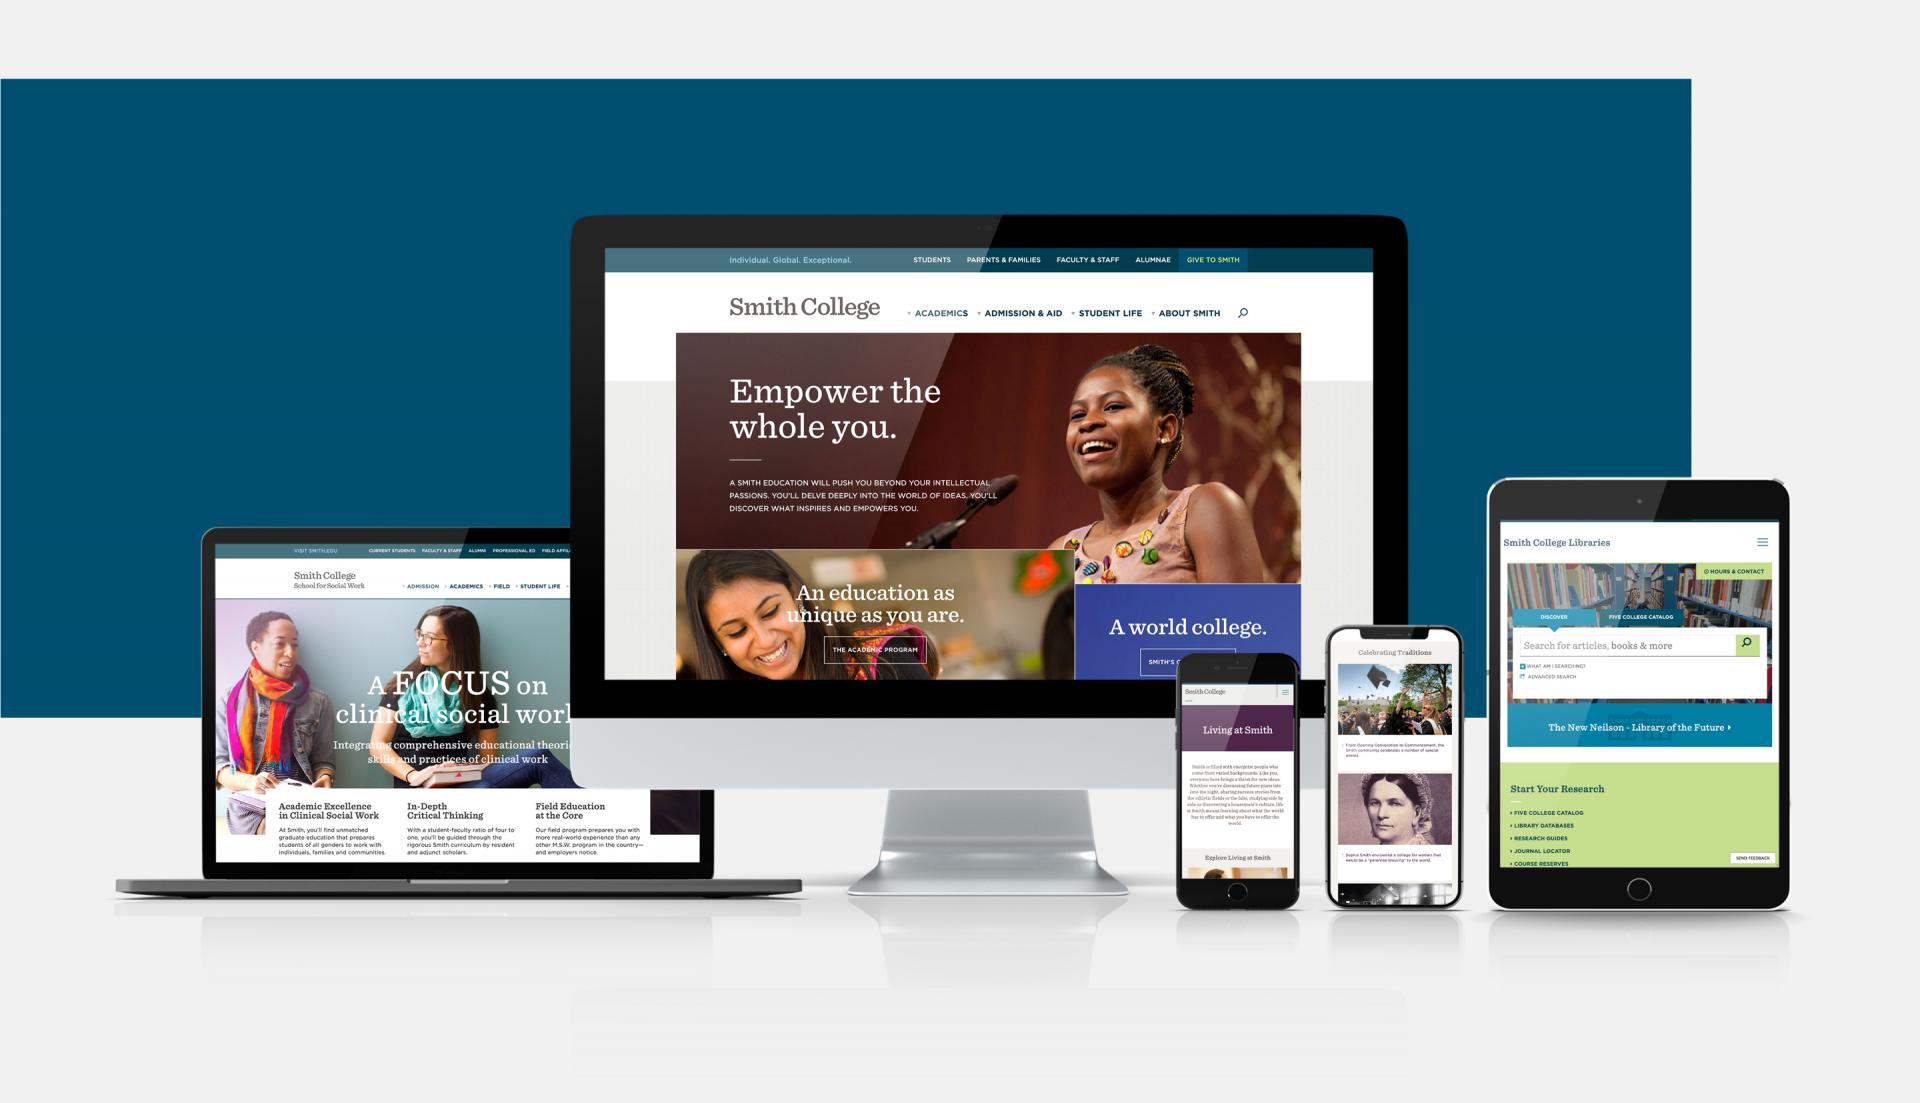 Smith College website displaying on different devices.